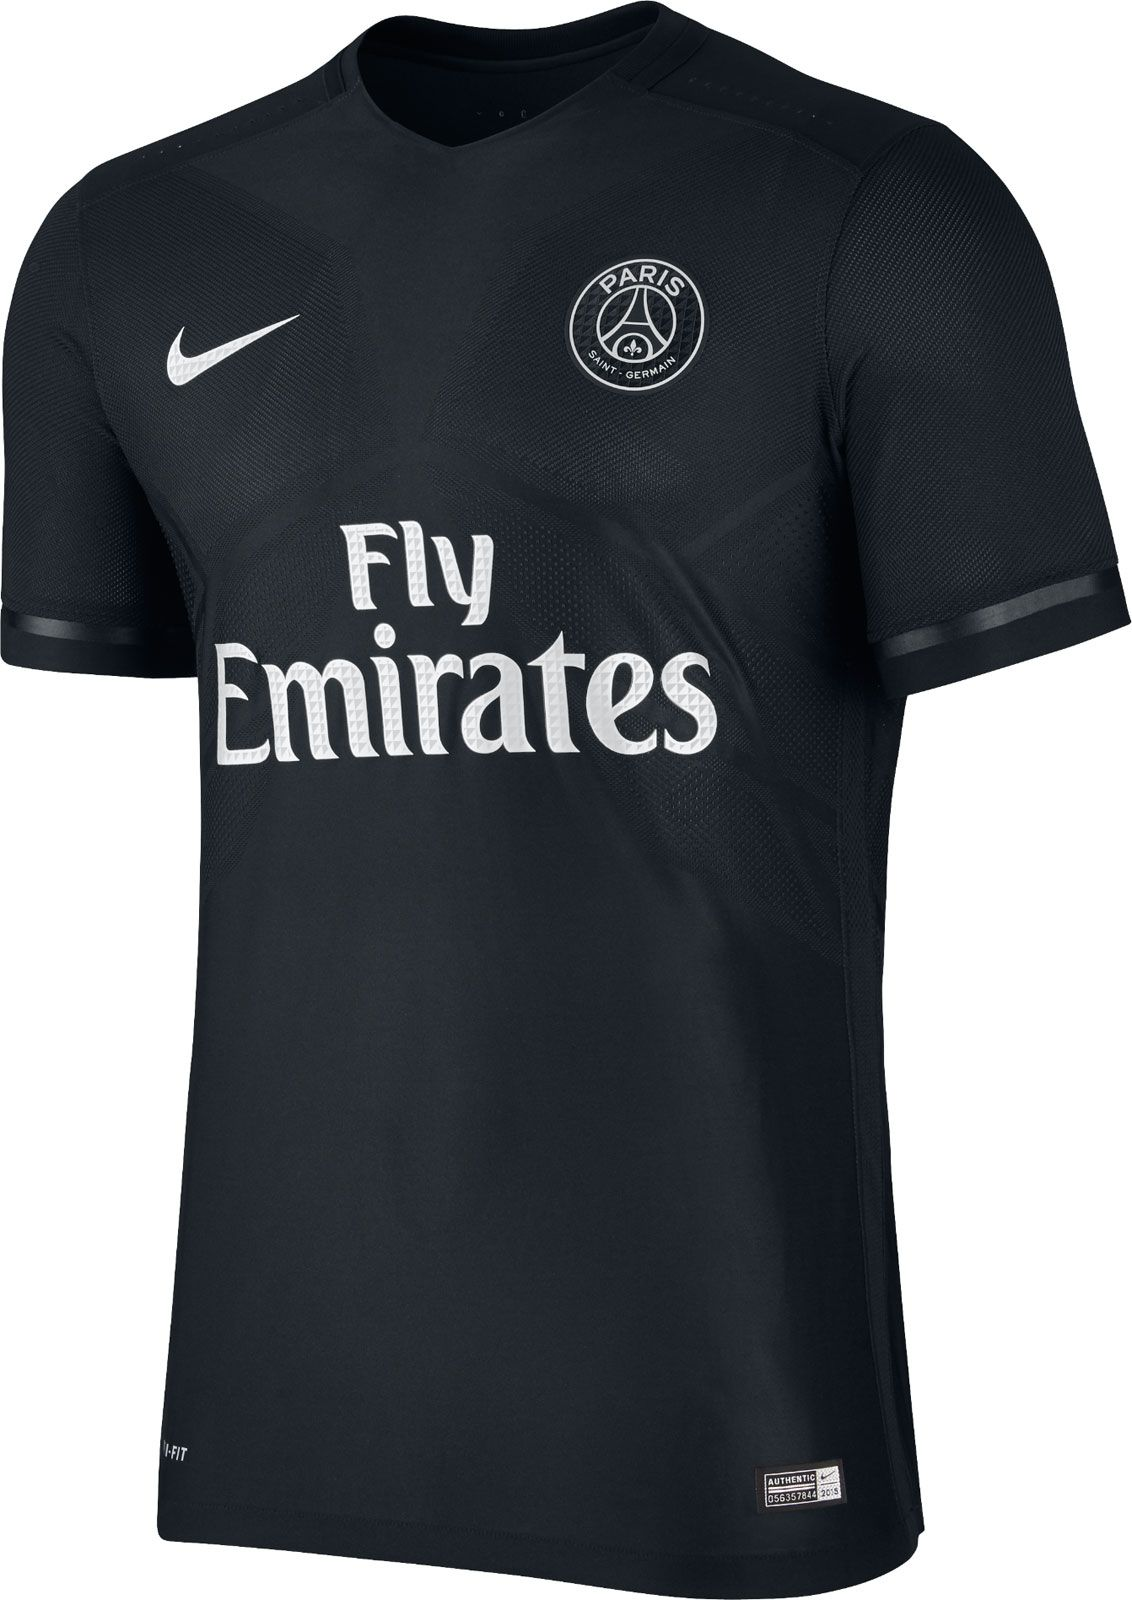 Psg black and pink jersey - Psg 15 16 Champions League Home Jersey